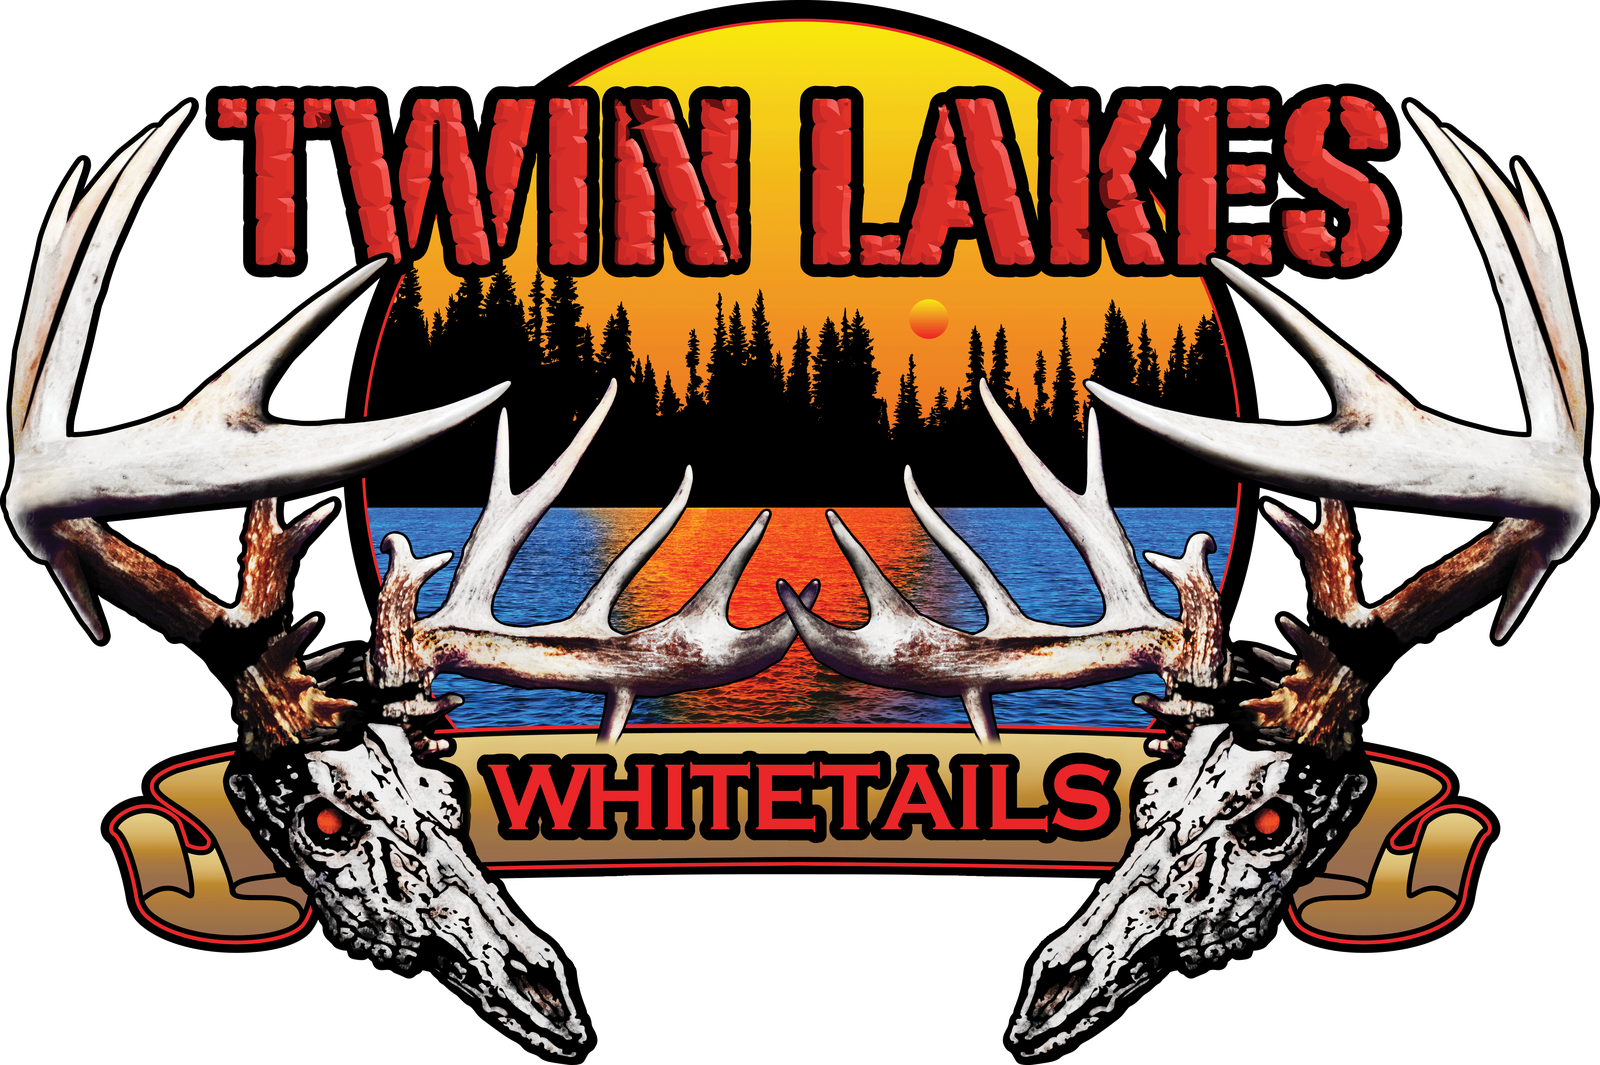 Twin Lakes Whitetails